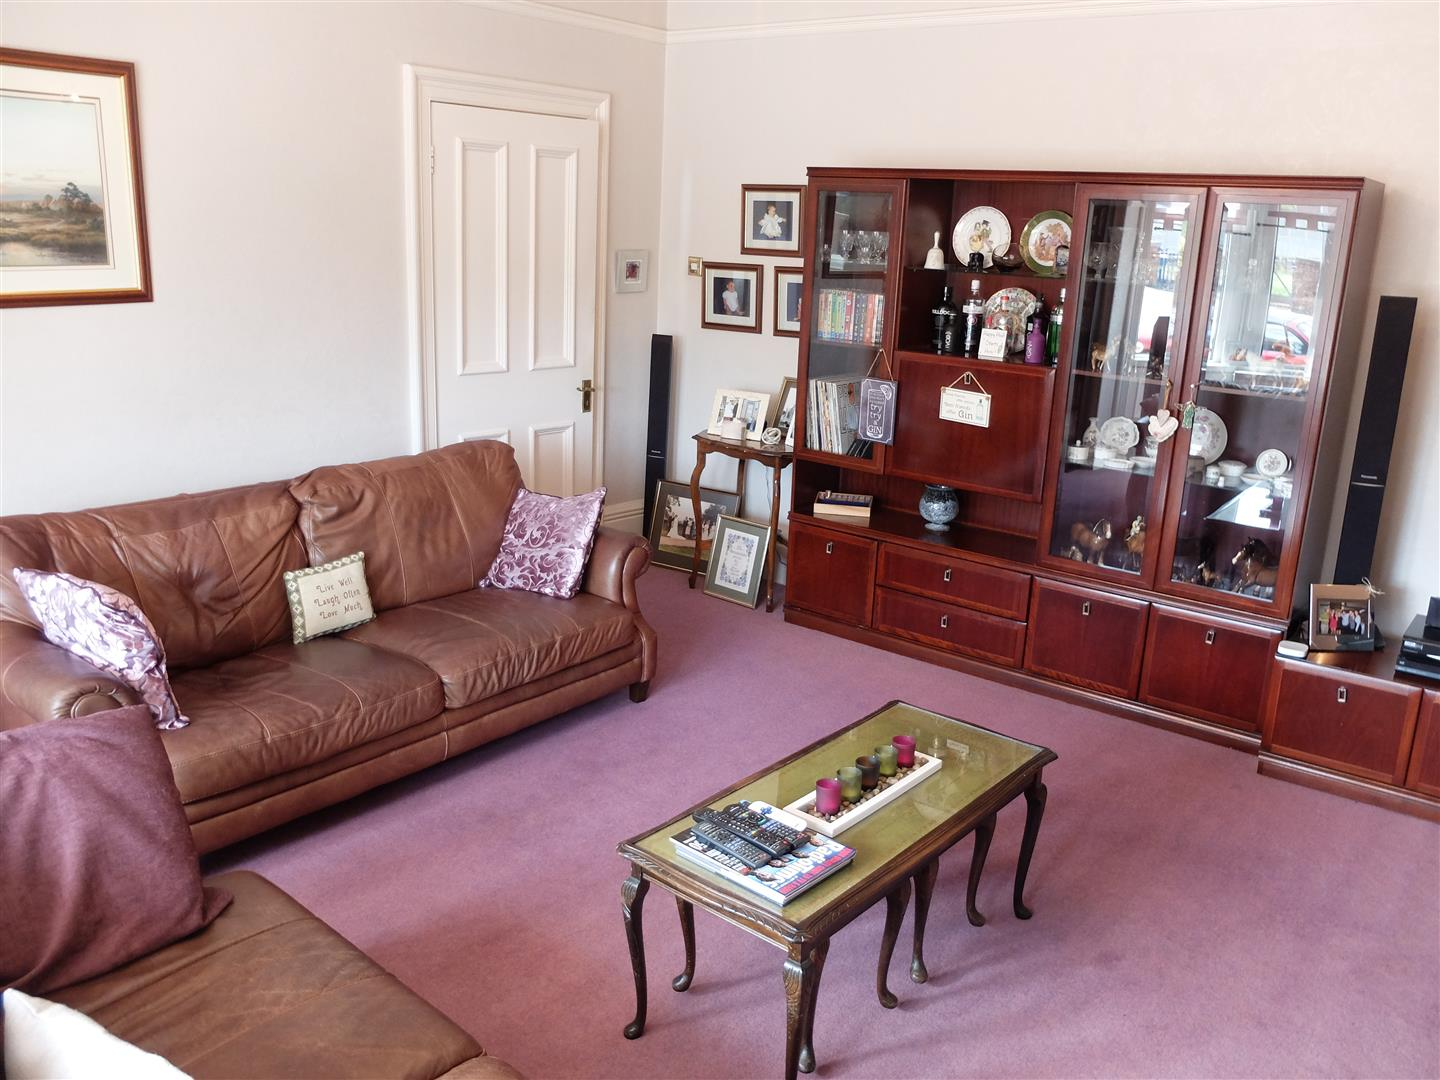 30 Lazonby Terrace Carlisle 5 Bedrooms House - End Terrace For Sale 188,000